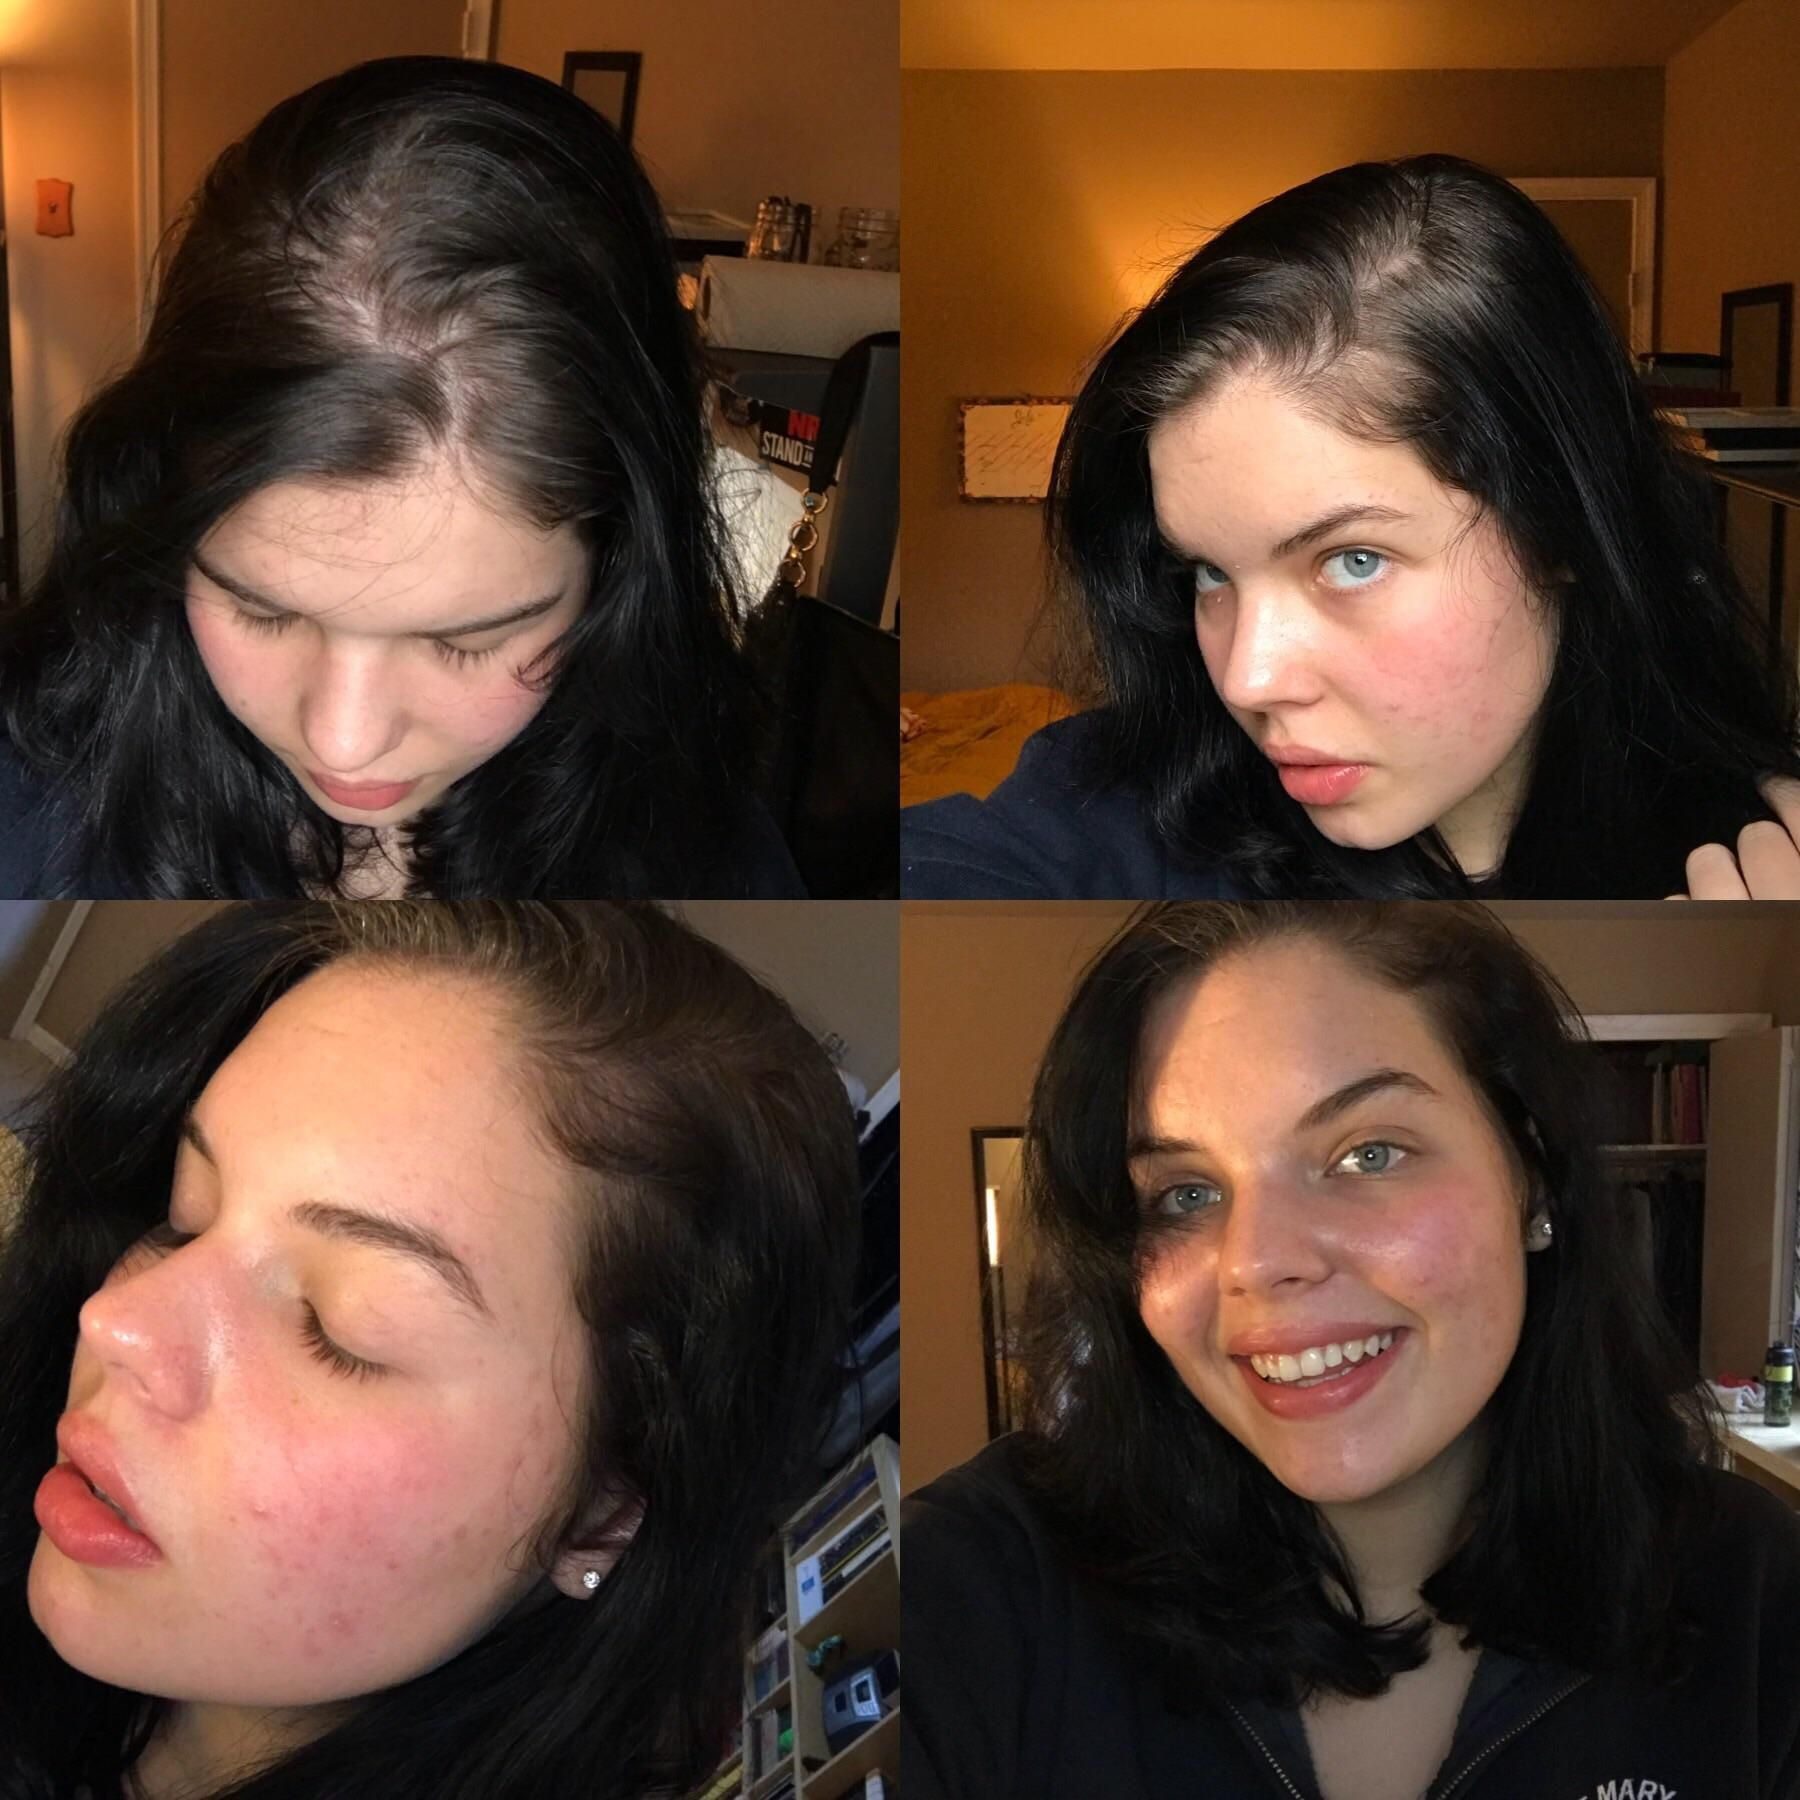 Advice Wanted Growing Out Black Dye Makes Roots Looks Gray Nonexistent How To Grow Out Dye Gracefully Is Bleach An Grow Black Hair Black Hair Dye Roots Hair